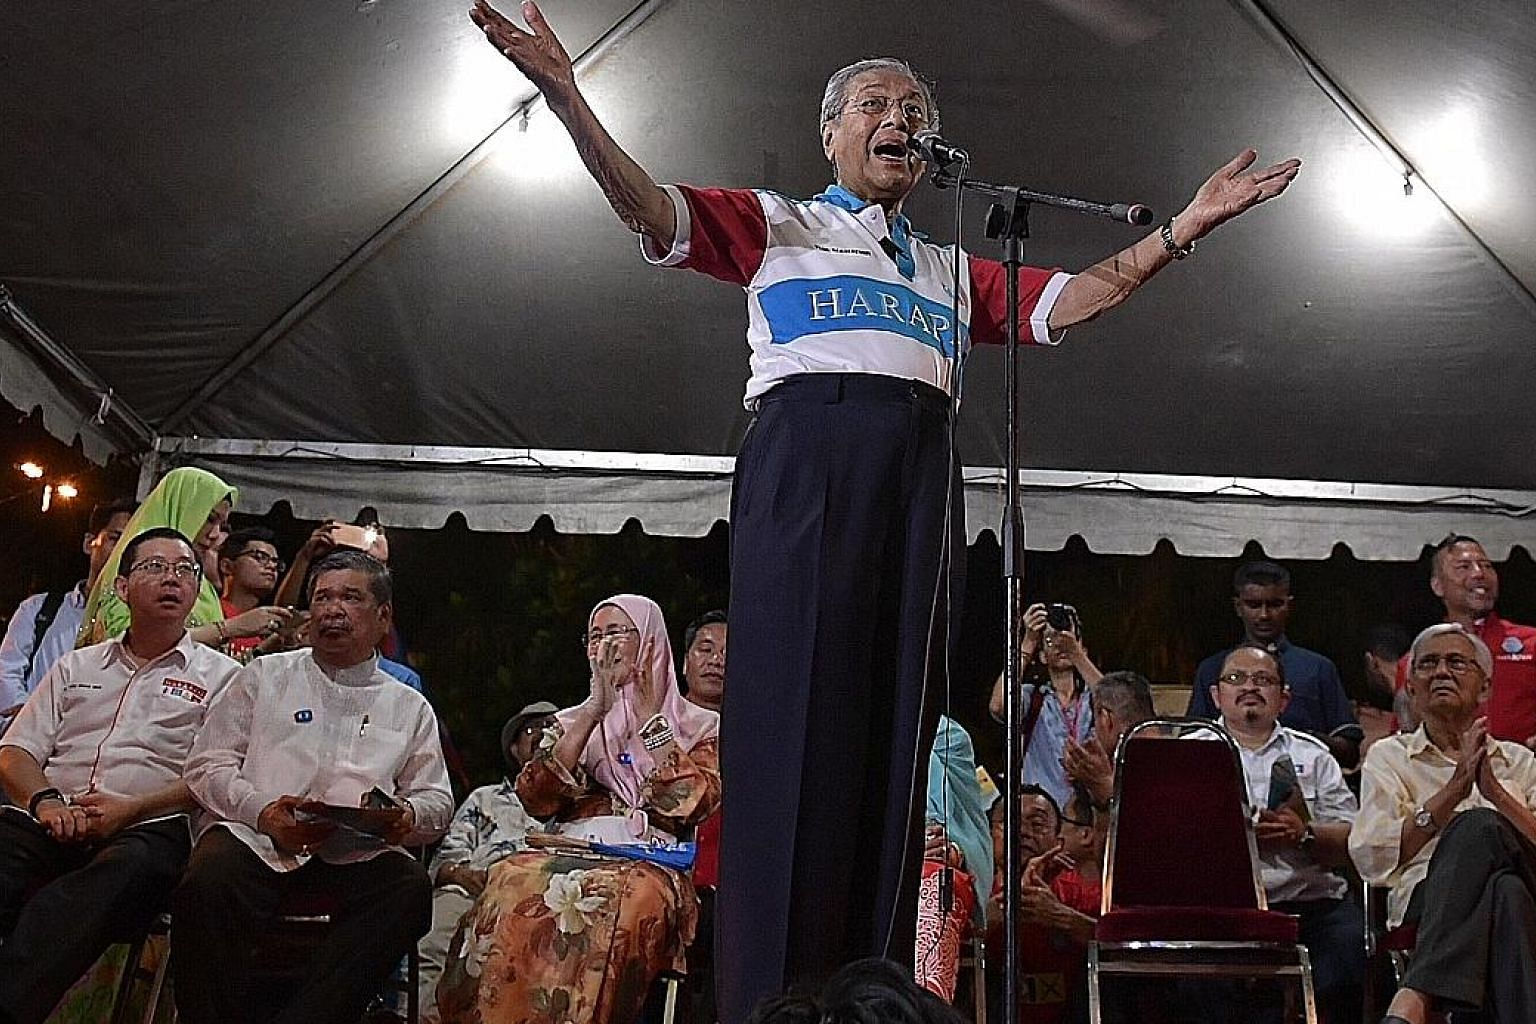 Tun Dr Mahathir Mohamad speaking at an election rally in Melaka on May 4. Also present at the rally were Pakatan Harapan leaders and former Cabinet ministers, including Tun Daim Zainuddin (right).